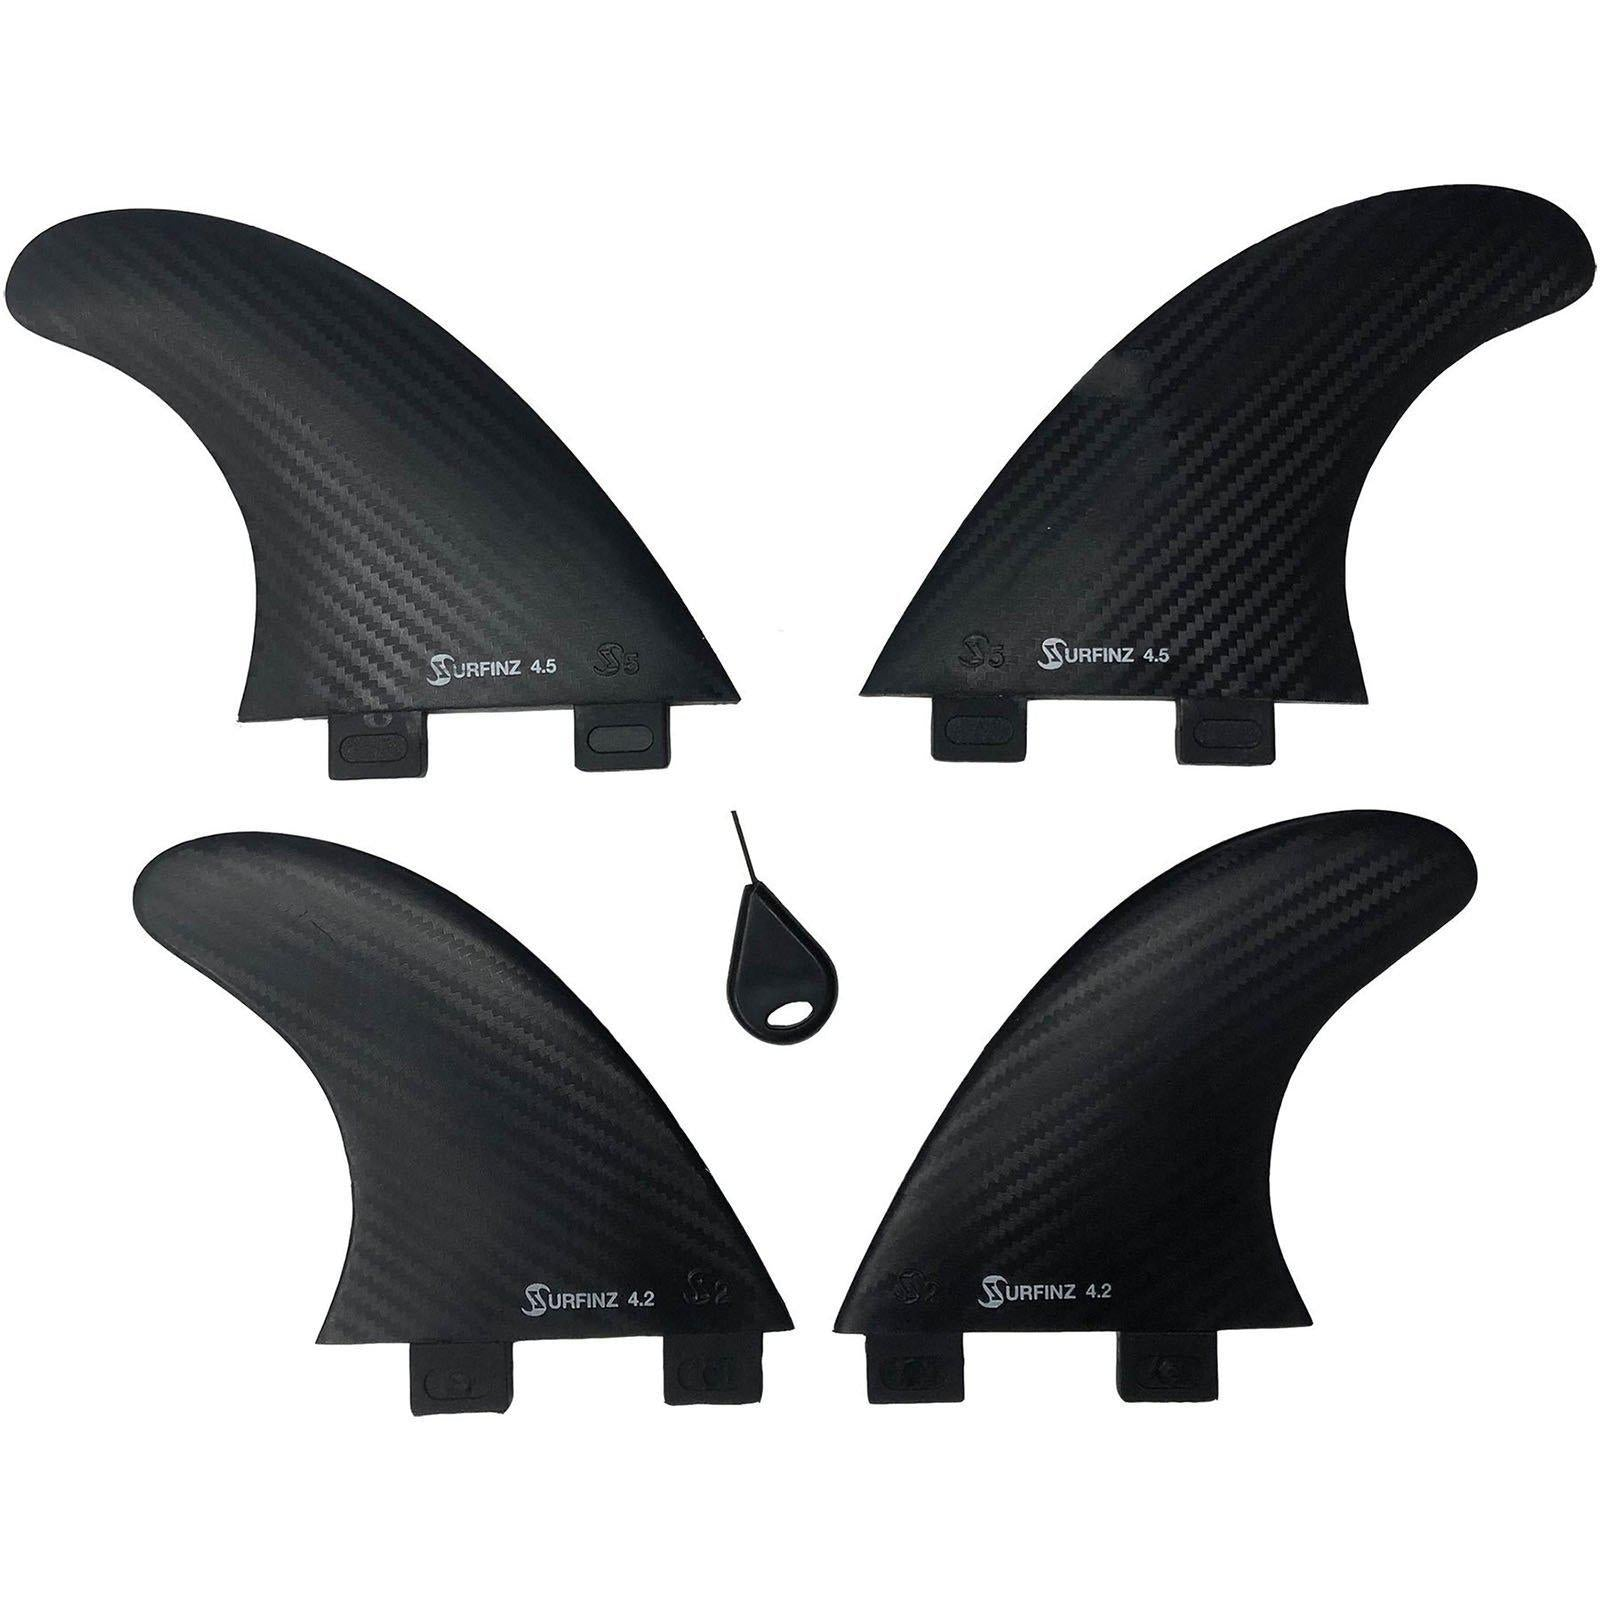 "Naish 4.5"" + 4.2"" Surfinz Quad Fin Set (4 pc)-Big Winds"